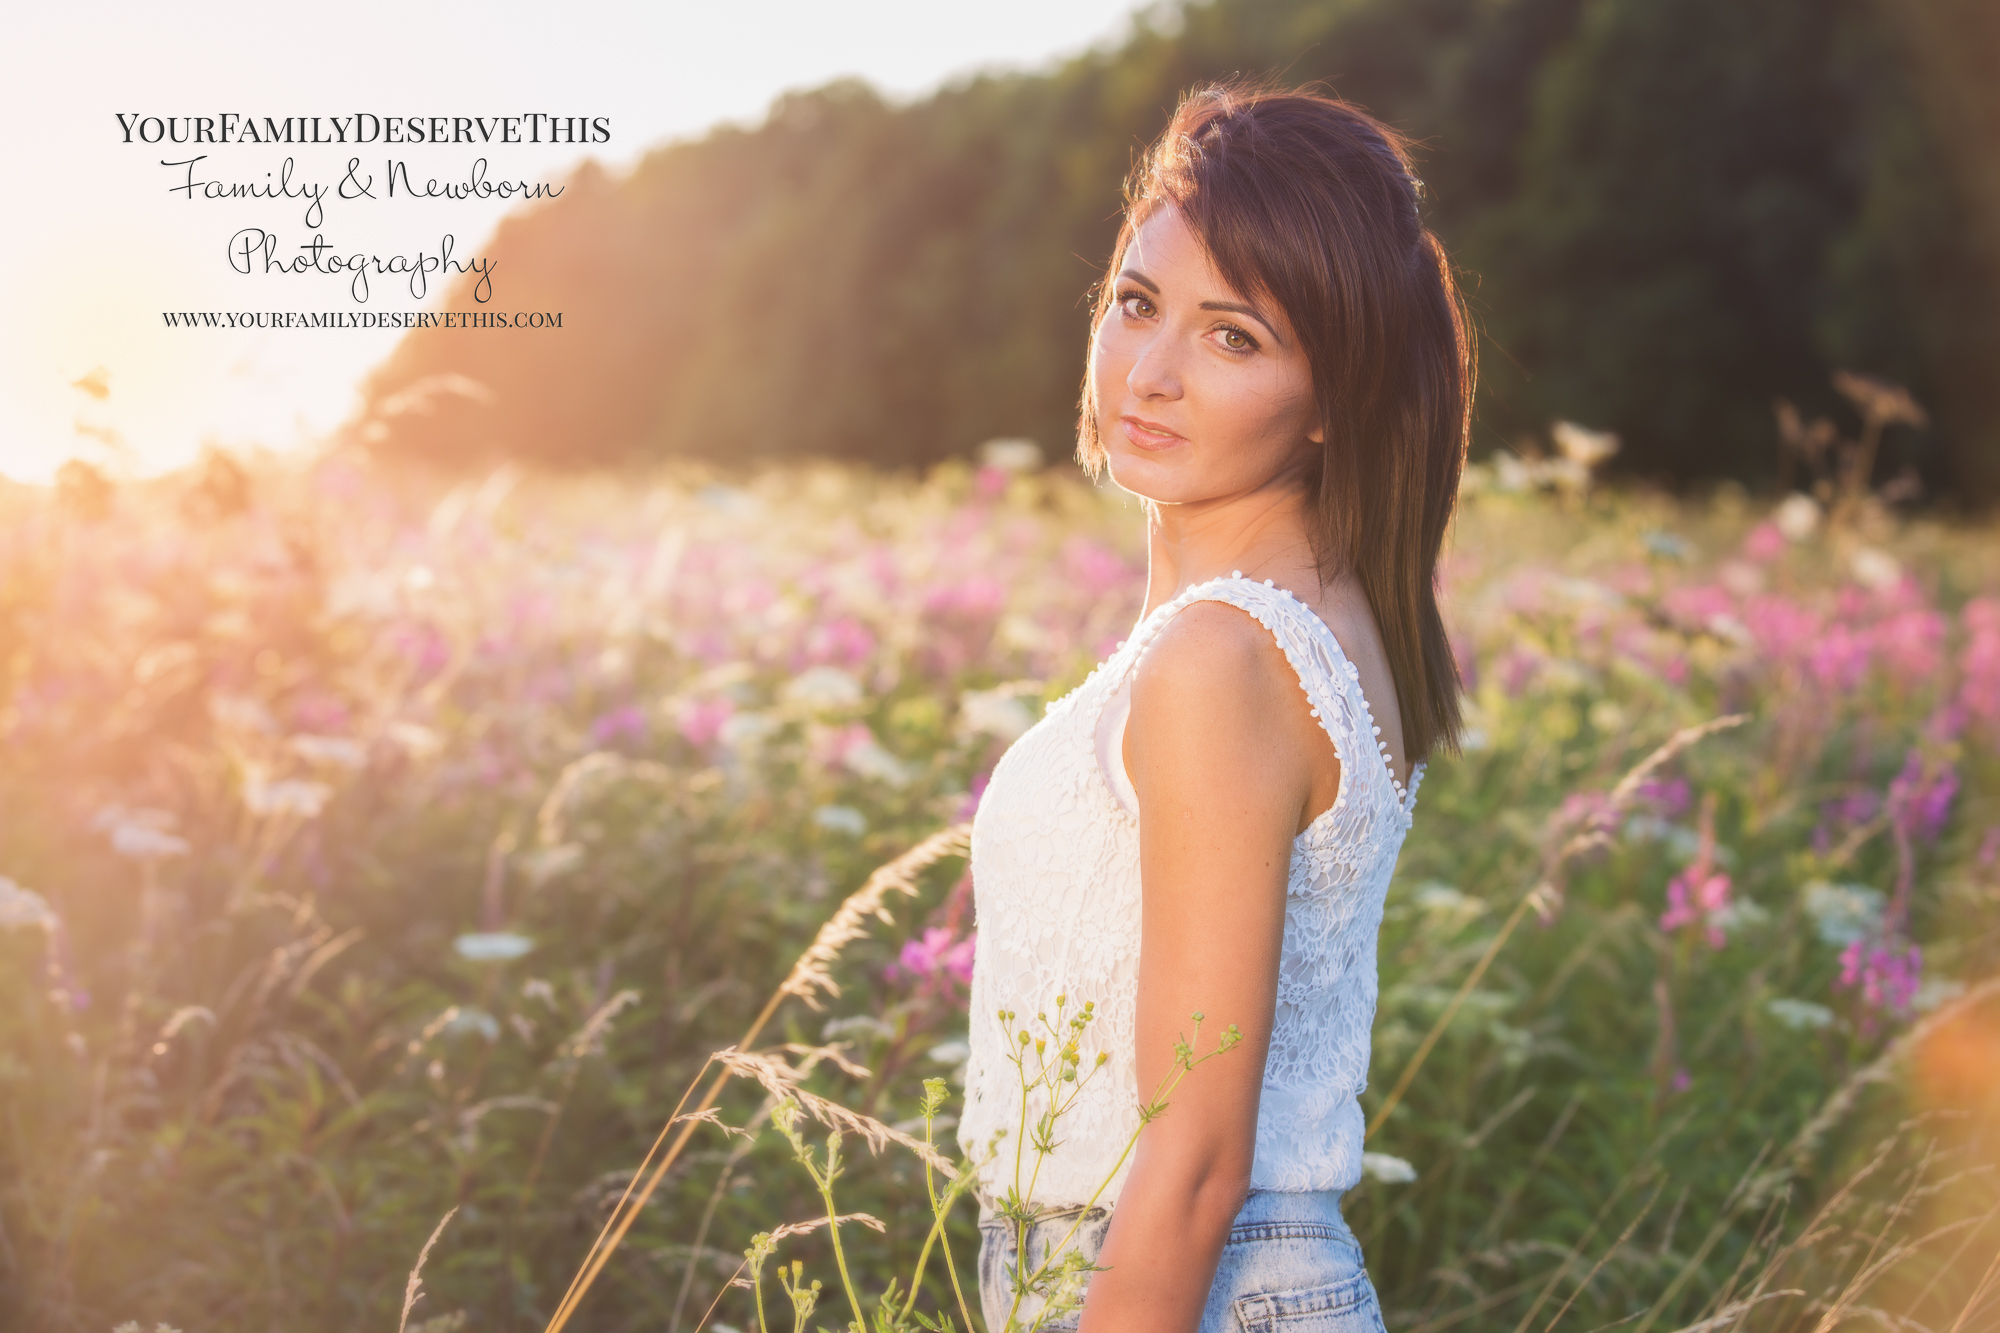 Outdoor photoshoots create a very different look to our studio shoots. Our Golden Hour photoshoots at sunset create something very special, like this photo.https://www.yourfamilydeservethis.com